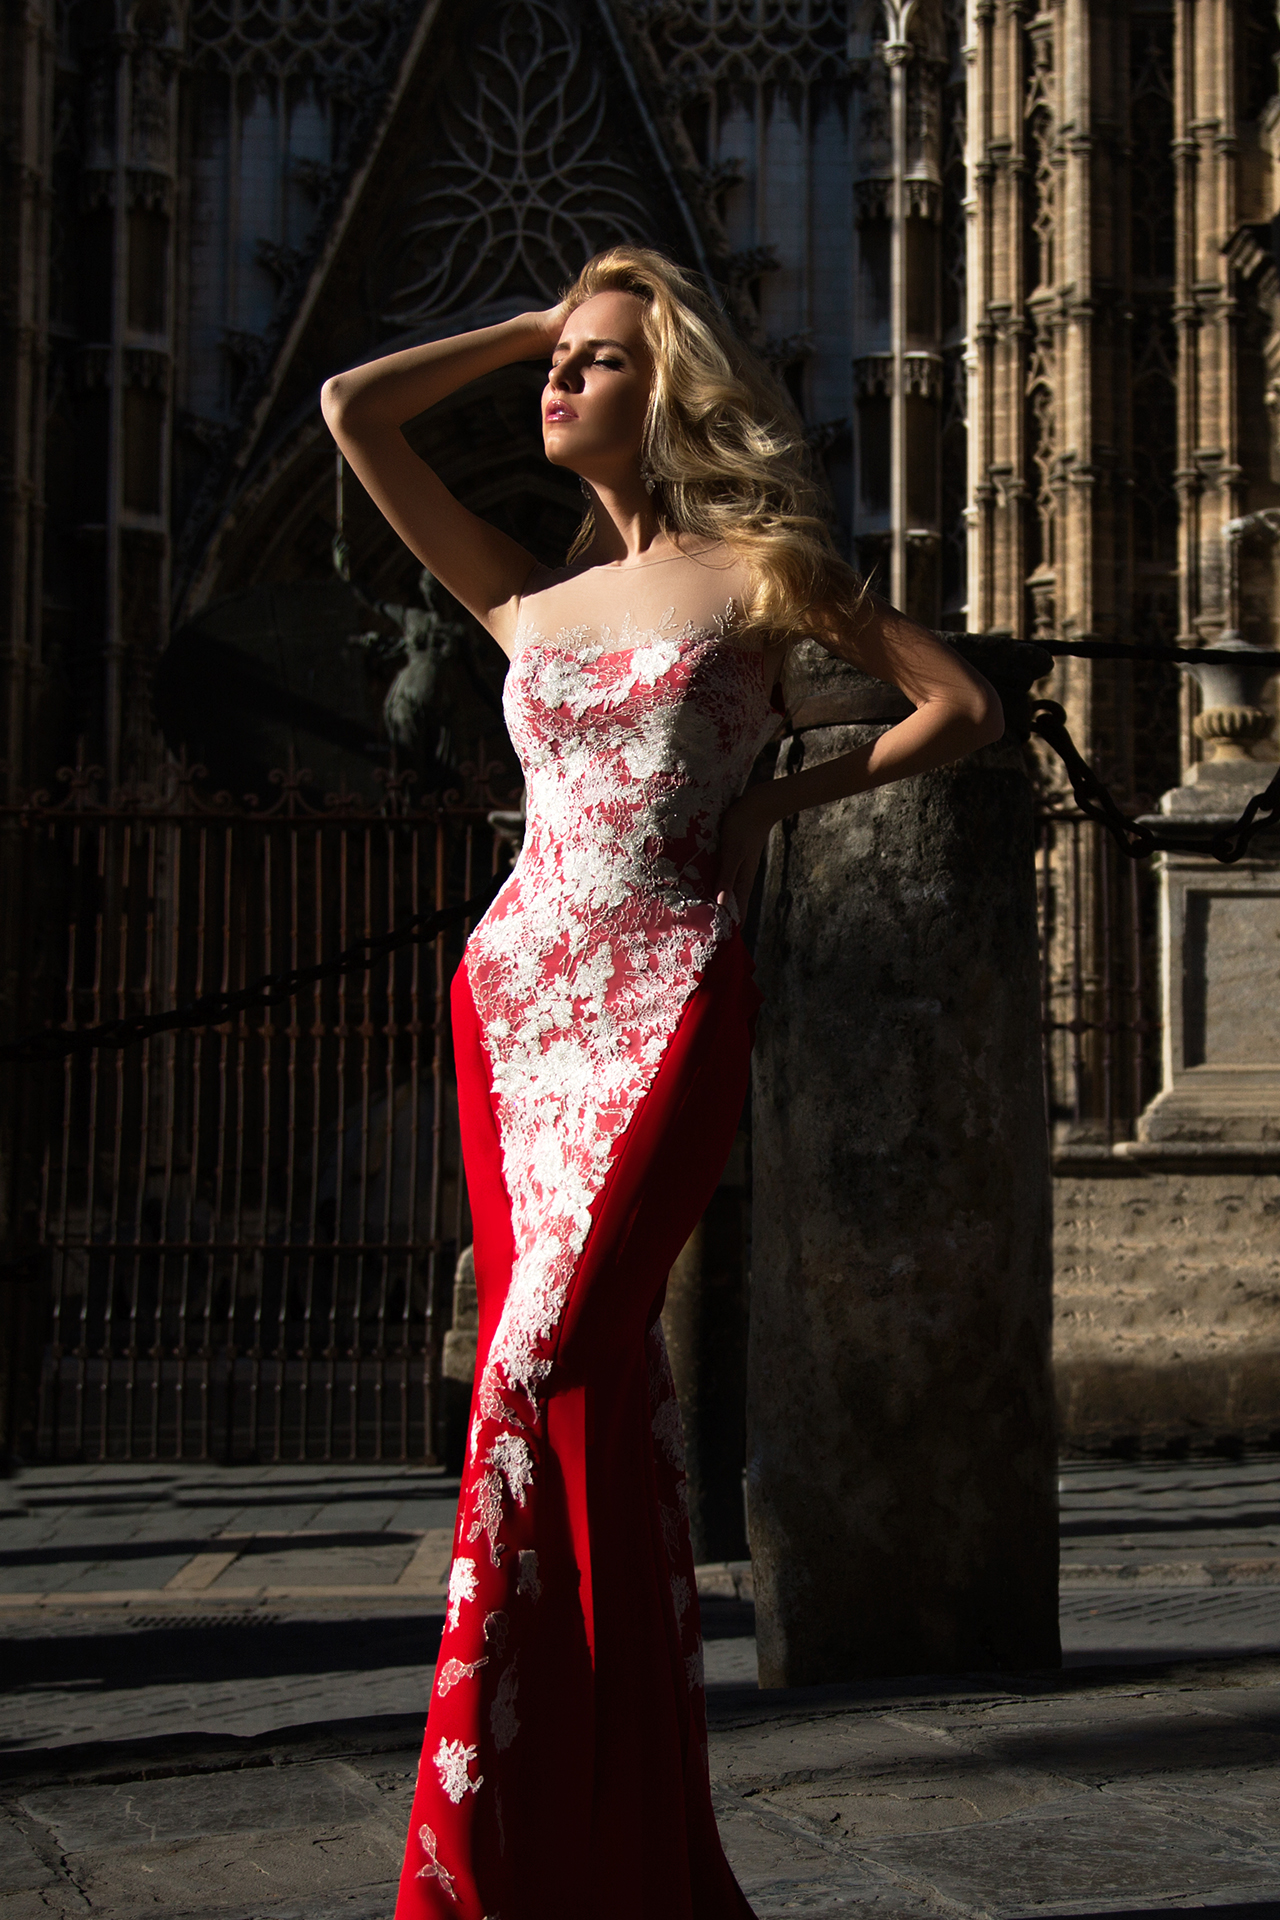 Evening gowns 922 Silhouette  Fitted  Color  Red  Neckline  Sweetheart  Sleeves  Sleeveless  Illusion Straps  Train  With train